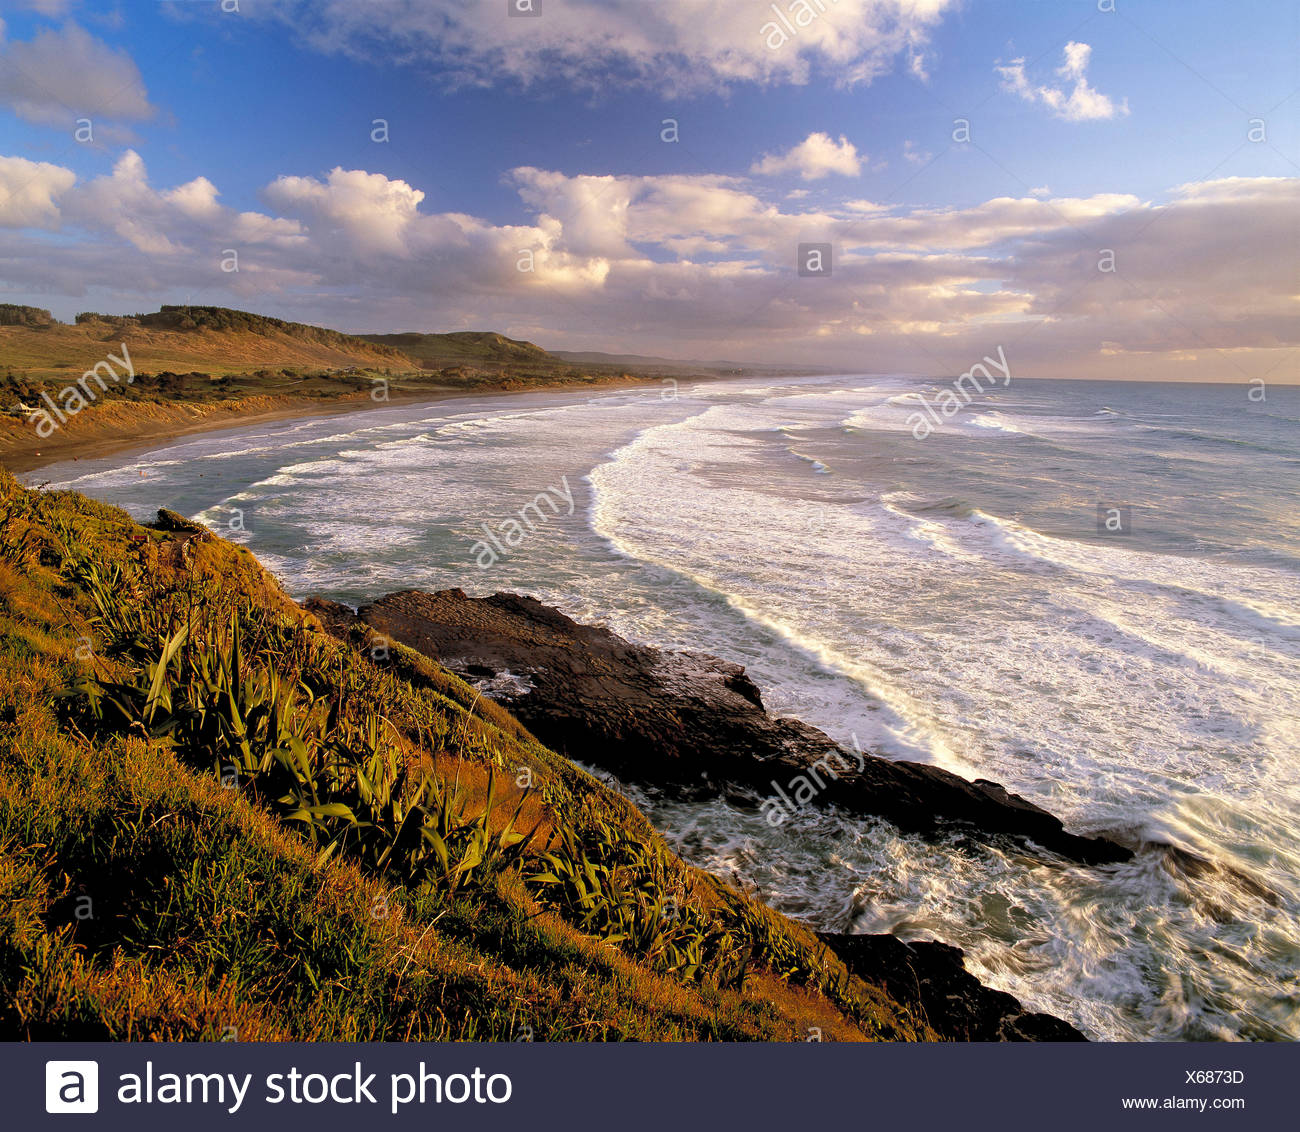 New Zealand. North Island. Auckland Region. Muriwai Beach. - Stock Image